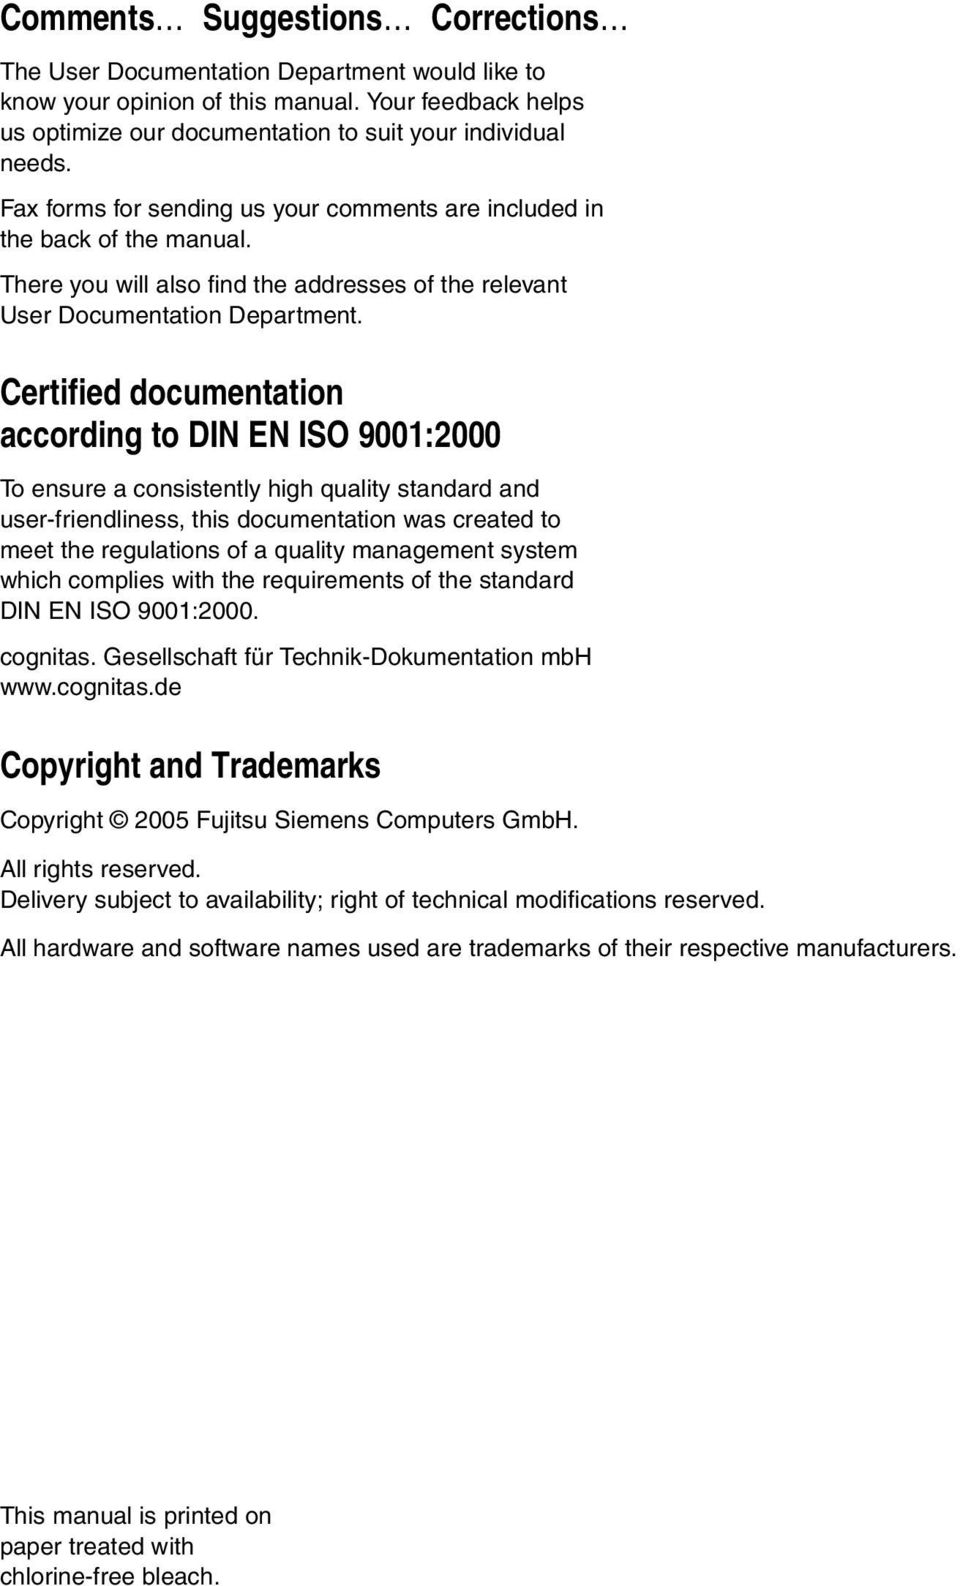 Certified documentation according to DIN EN ISO 9001:2000 To ensure a consistently high quality standard and user-friendliness, this documentation was created to meet the regulations of a quality